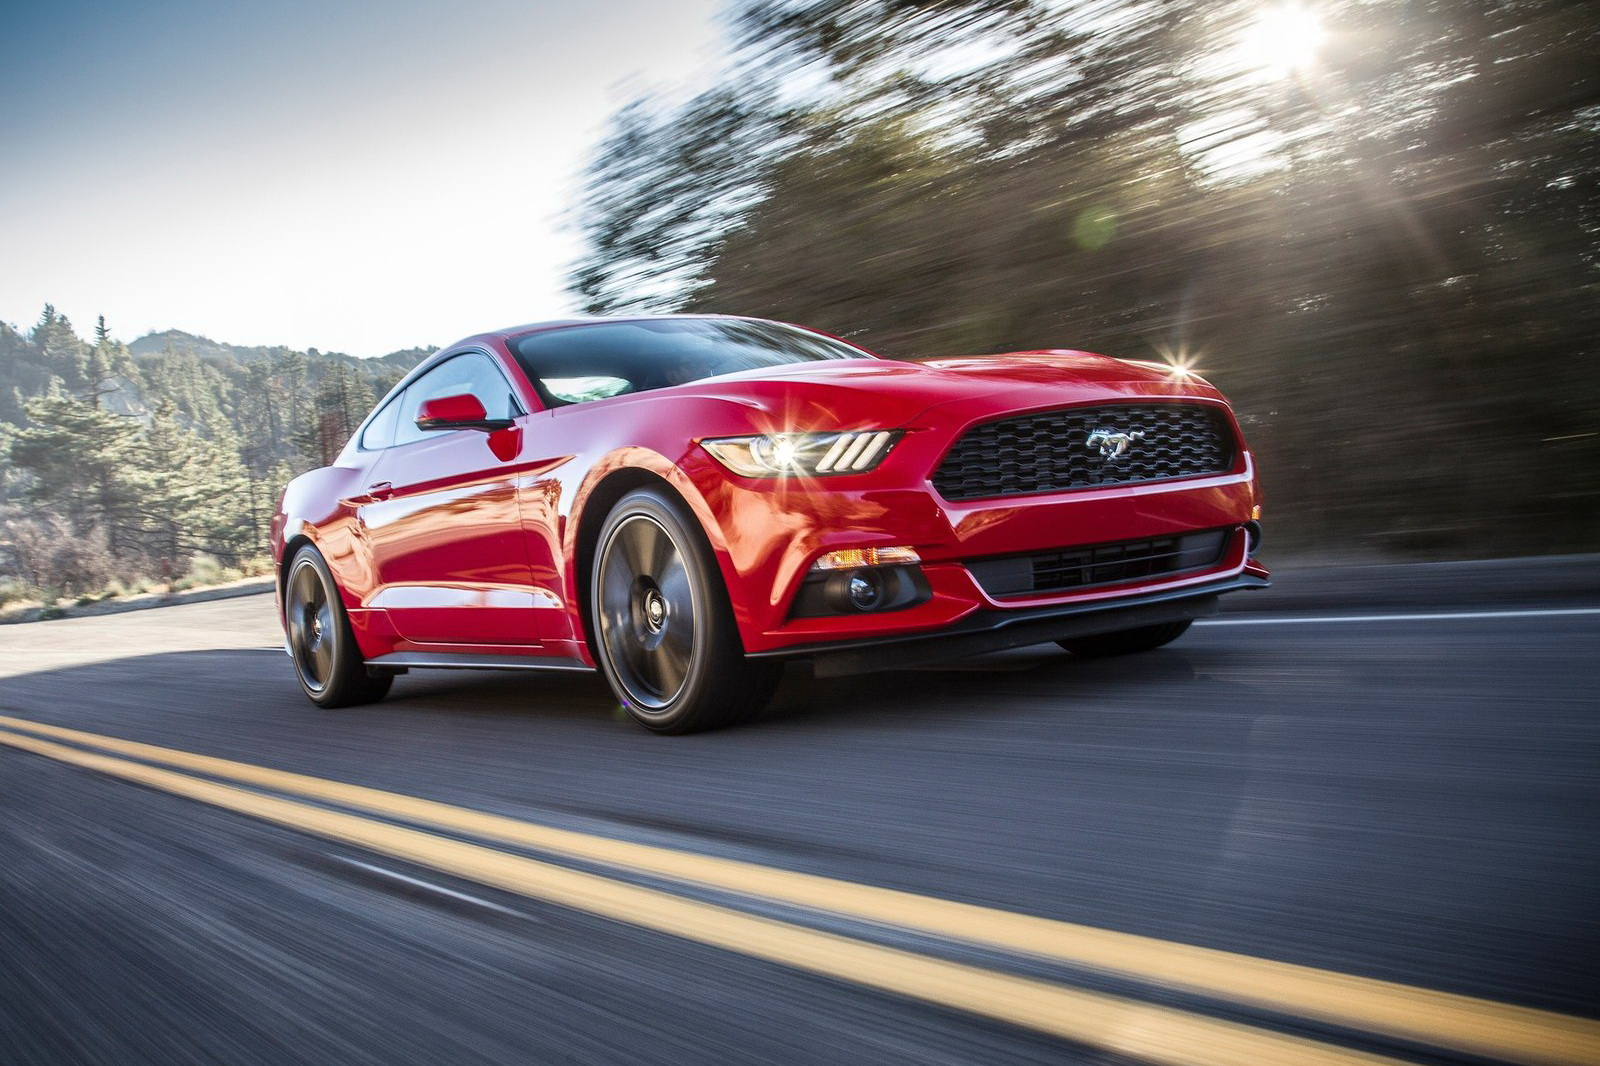 Ford-Mustang_EcoBoost-2015-1600-06.jpg